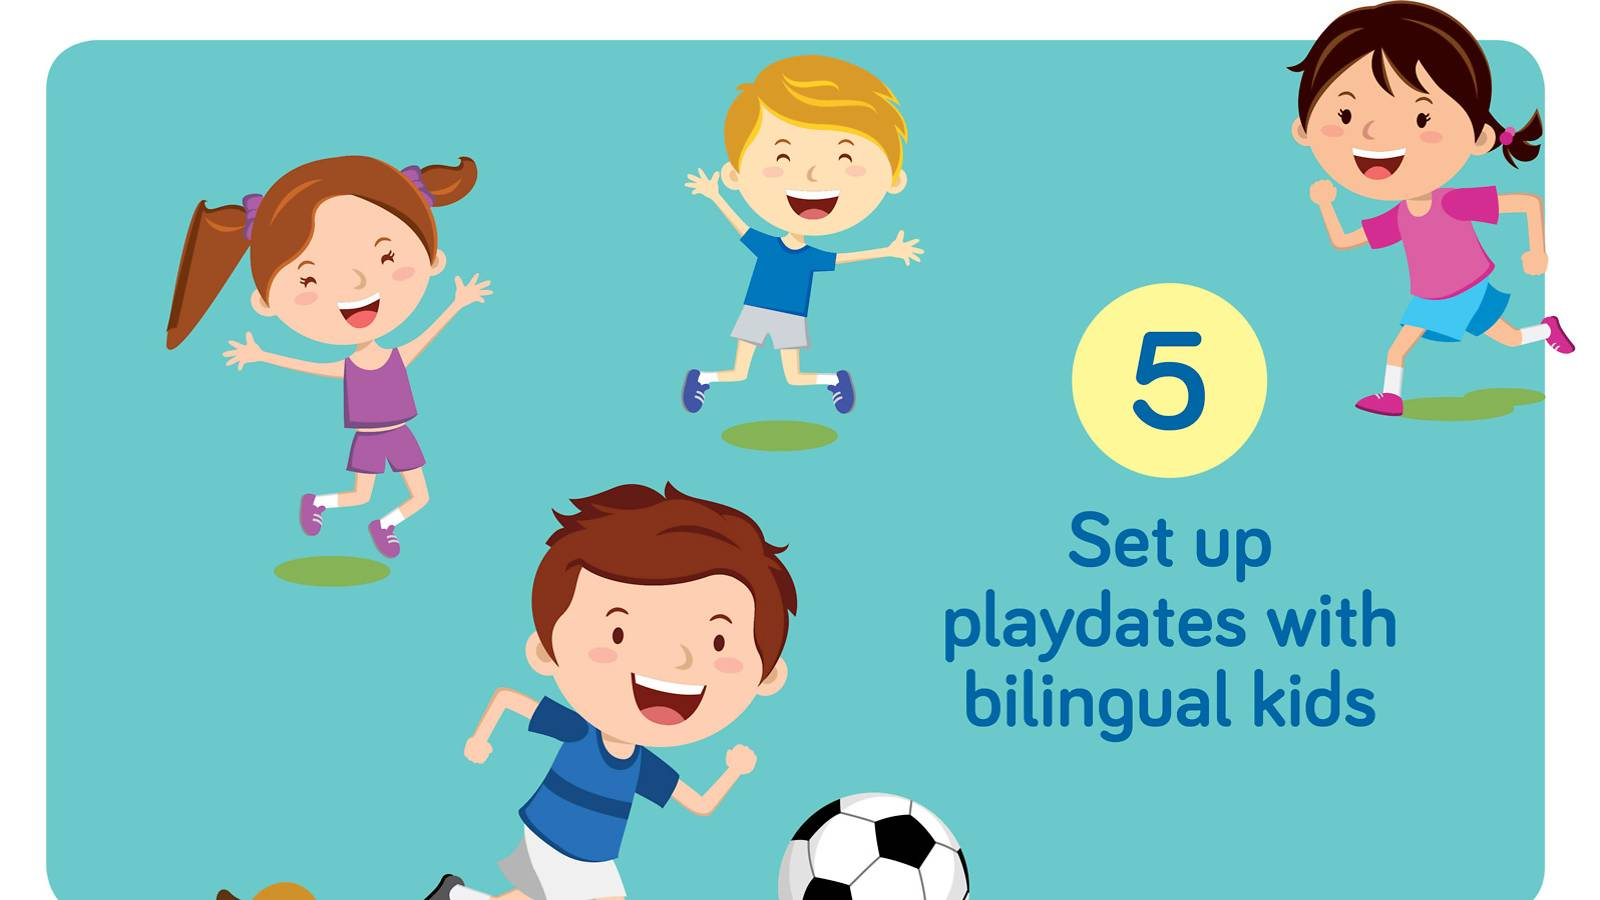 Info-6 ways to raise a bilingual kid5